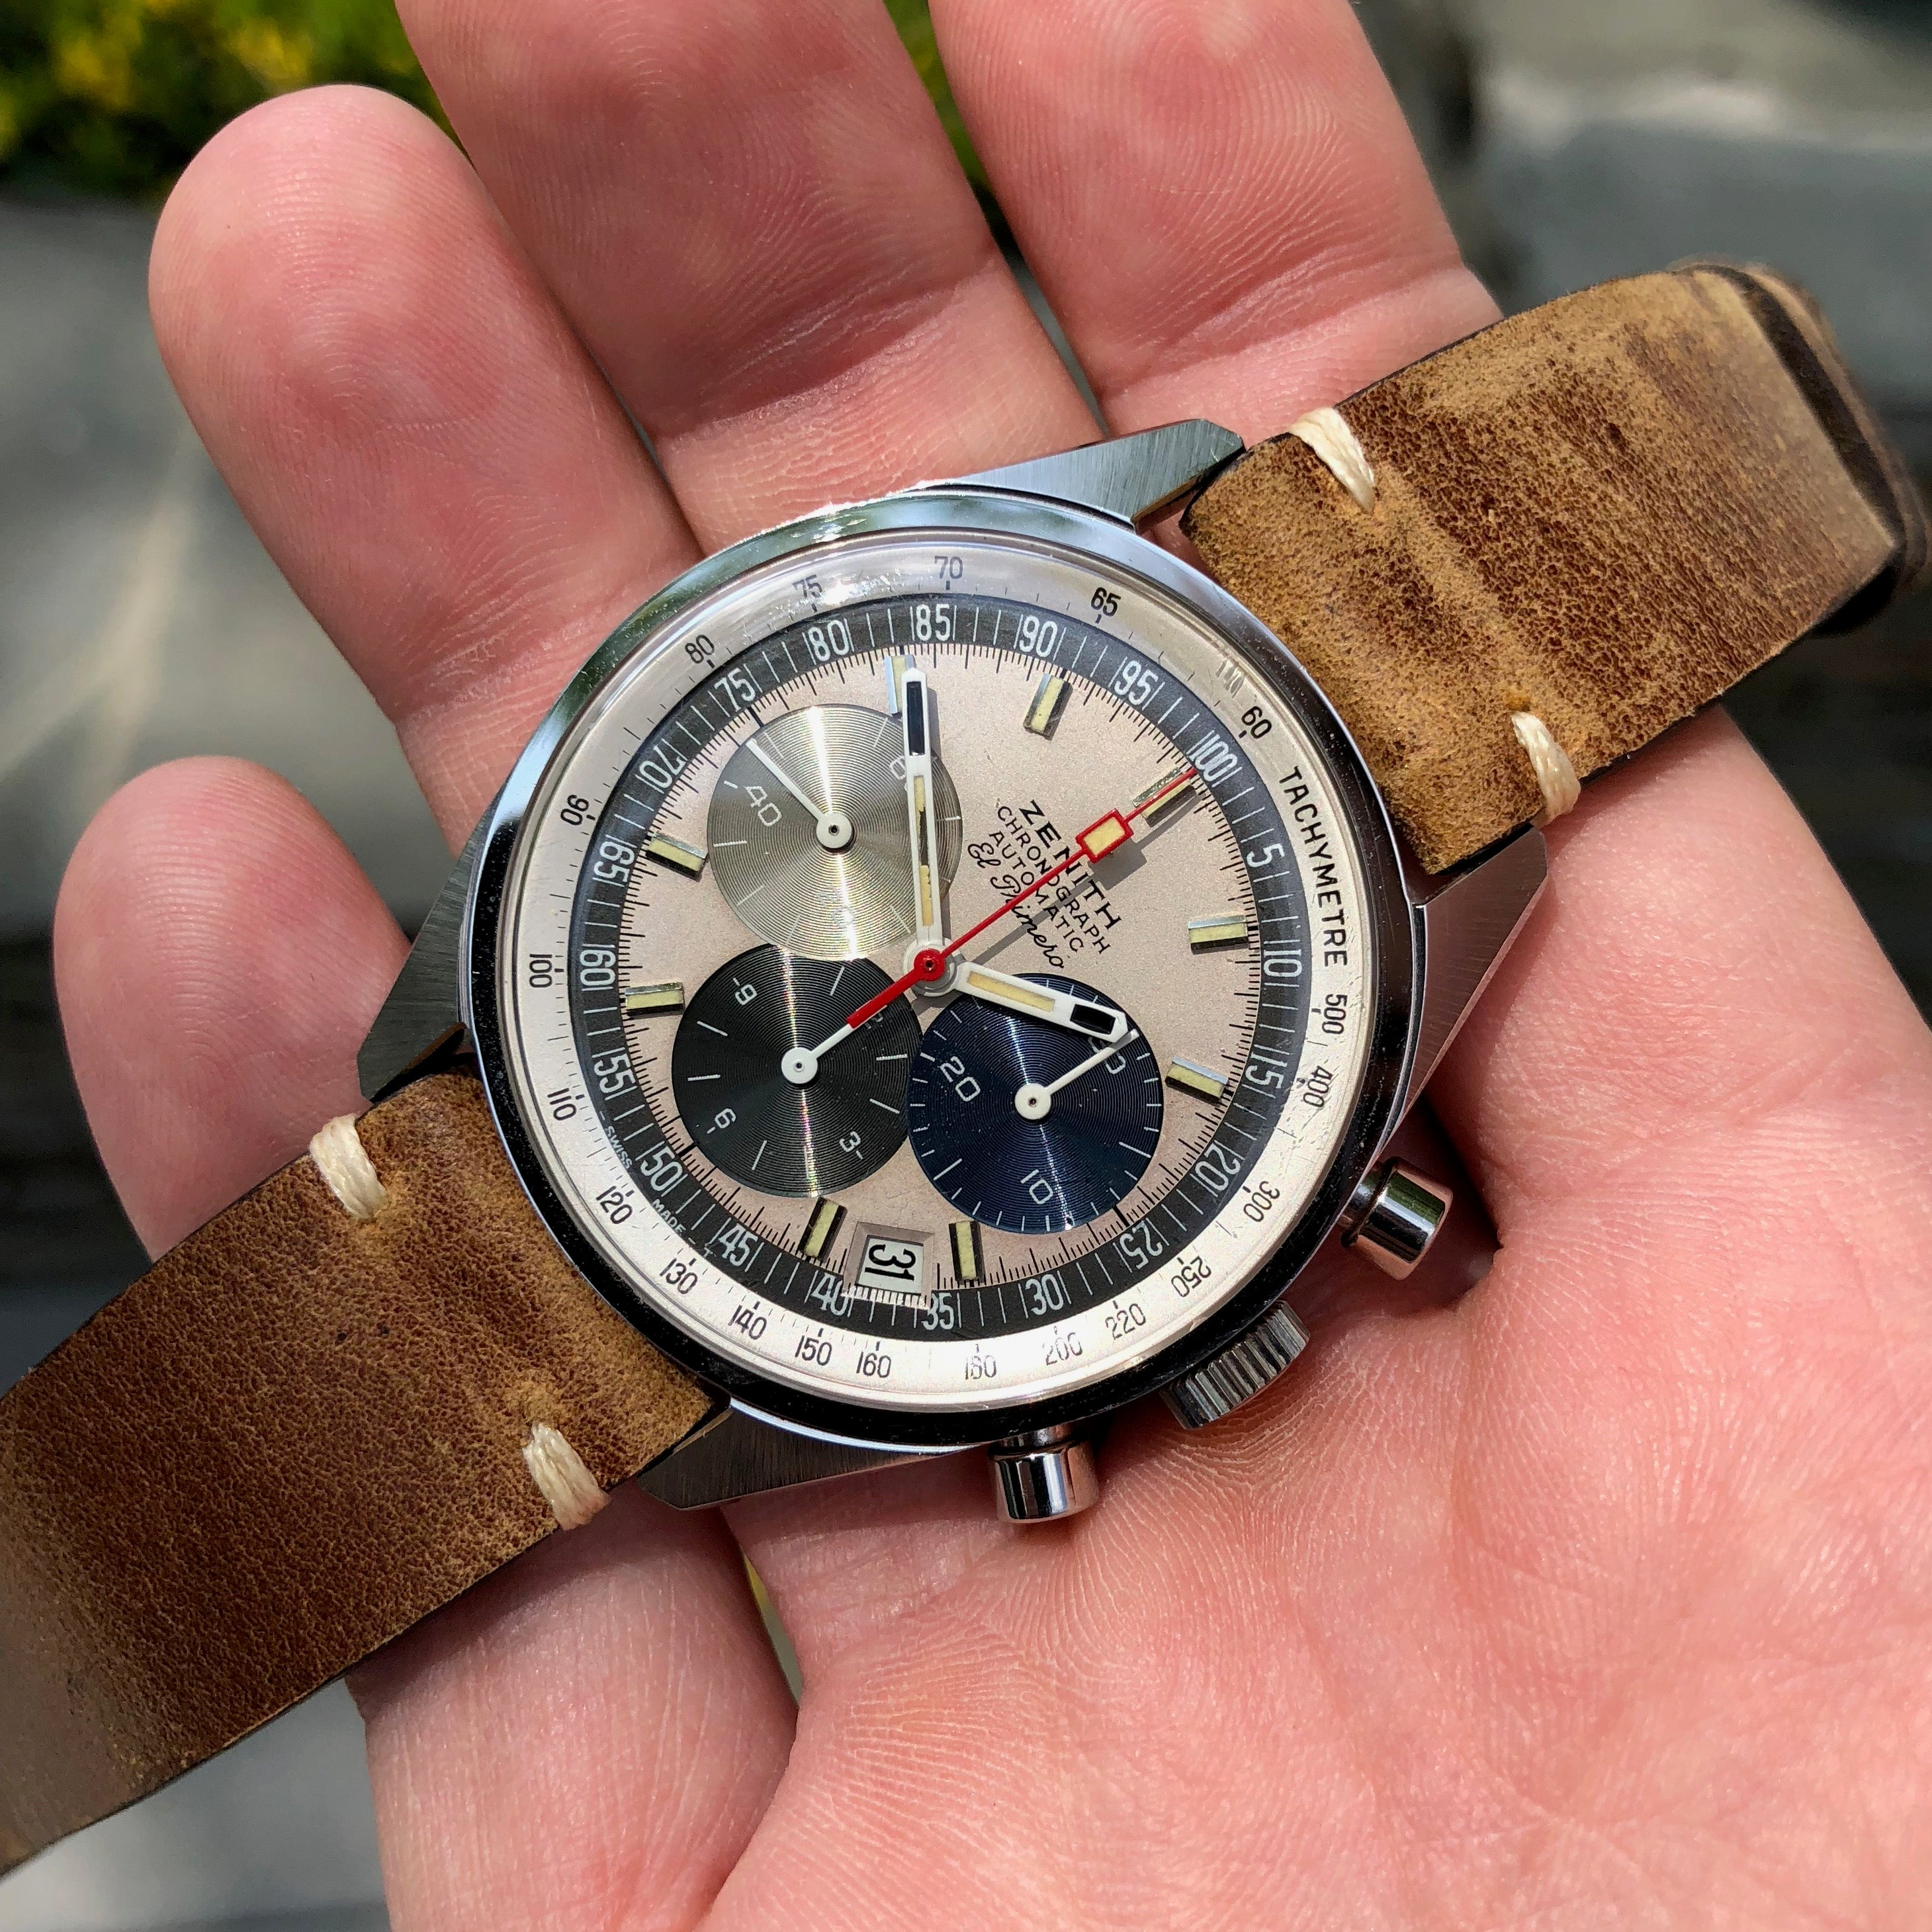 Vintage Zenith El Primero A386 Steel Chronograph Automatic Gay Freres Wristwatch - Hashtag Watch Company